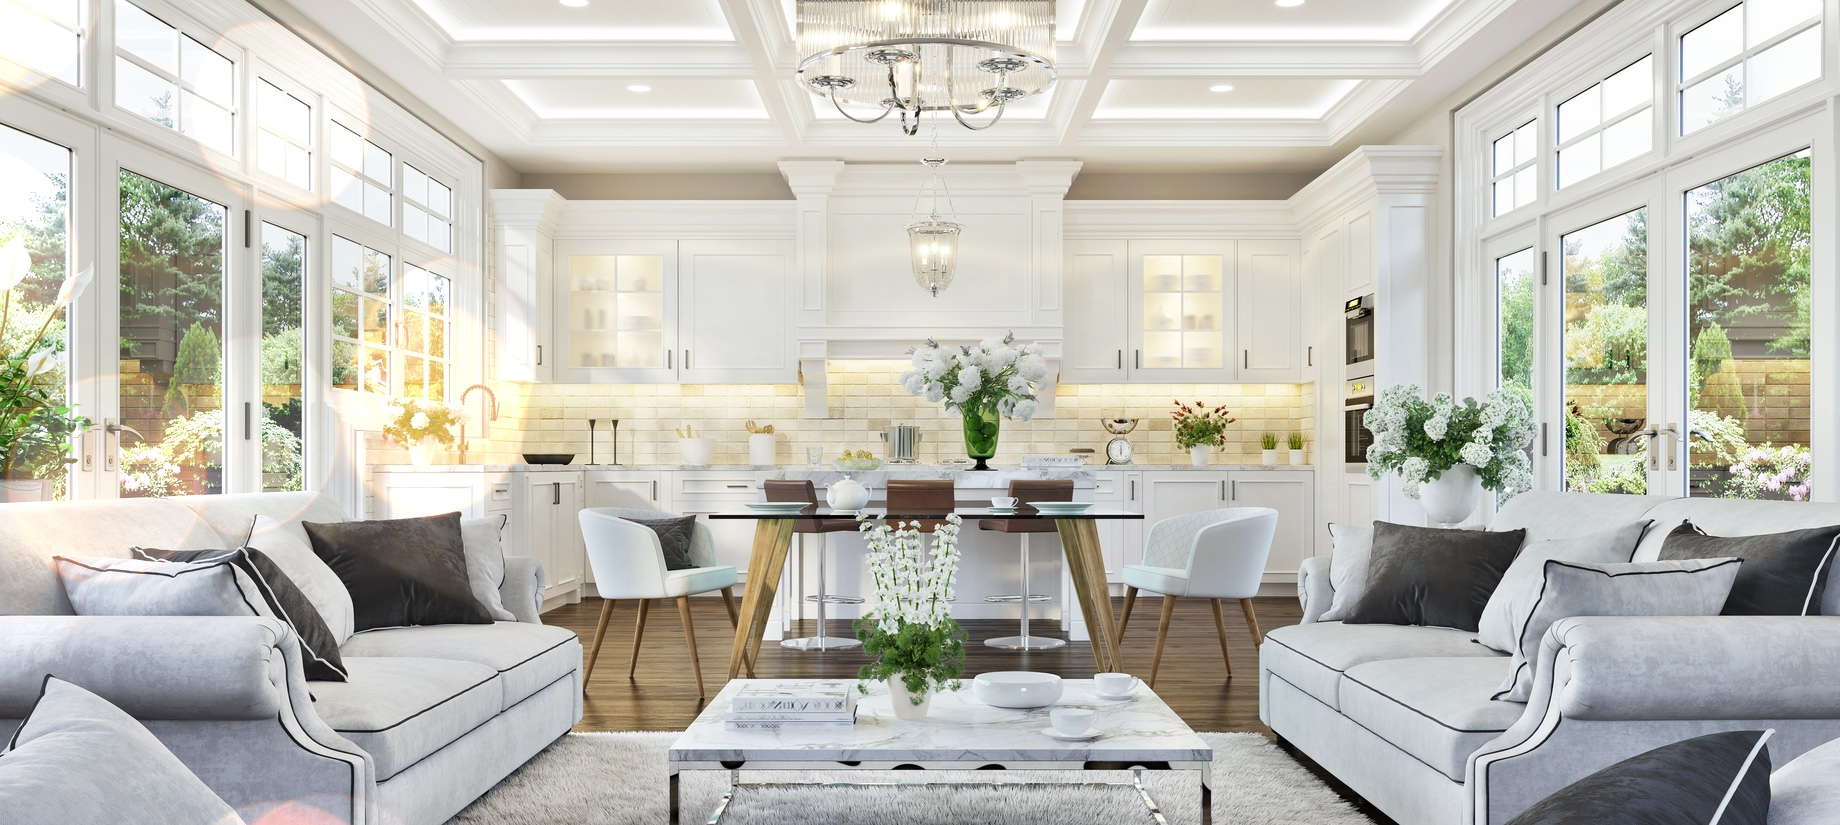 Home Décor - 5 Features To Look For In A Luxury House